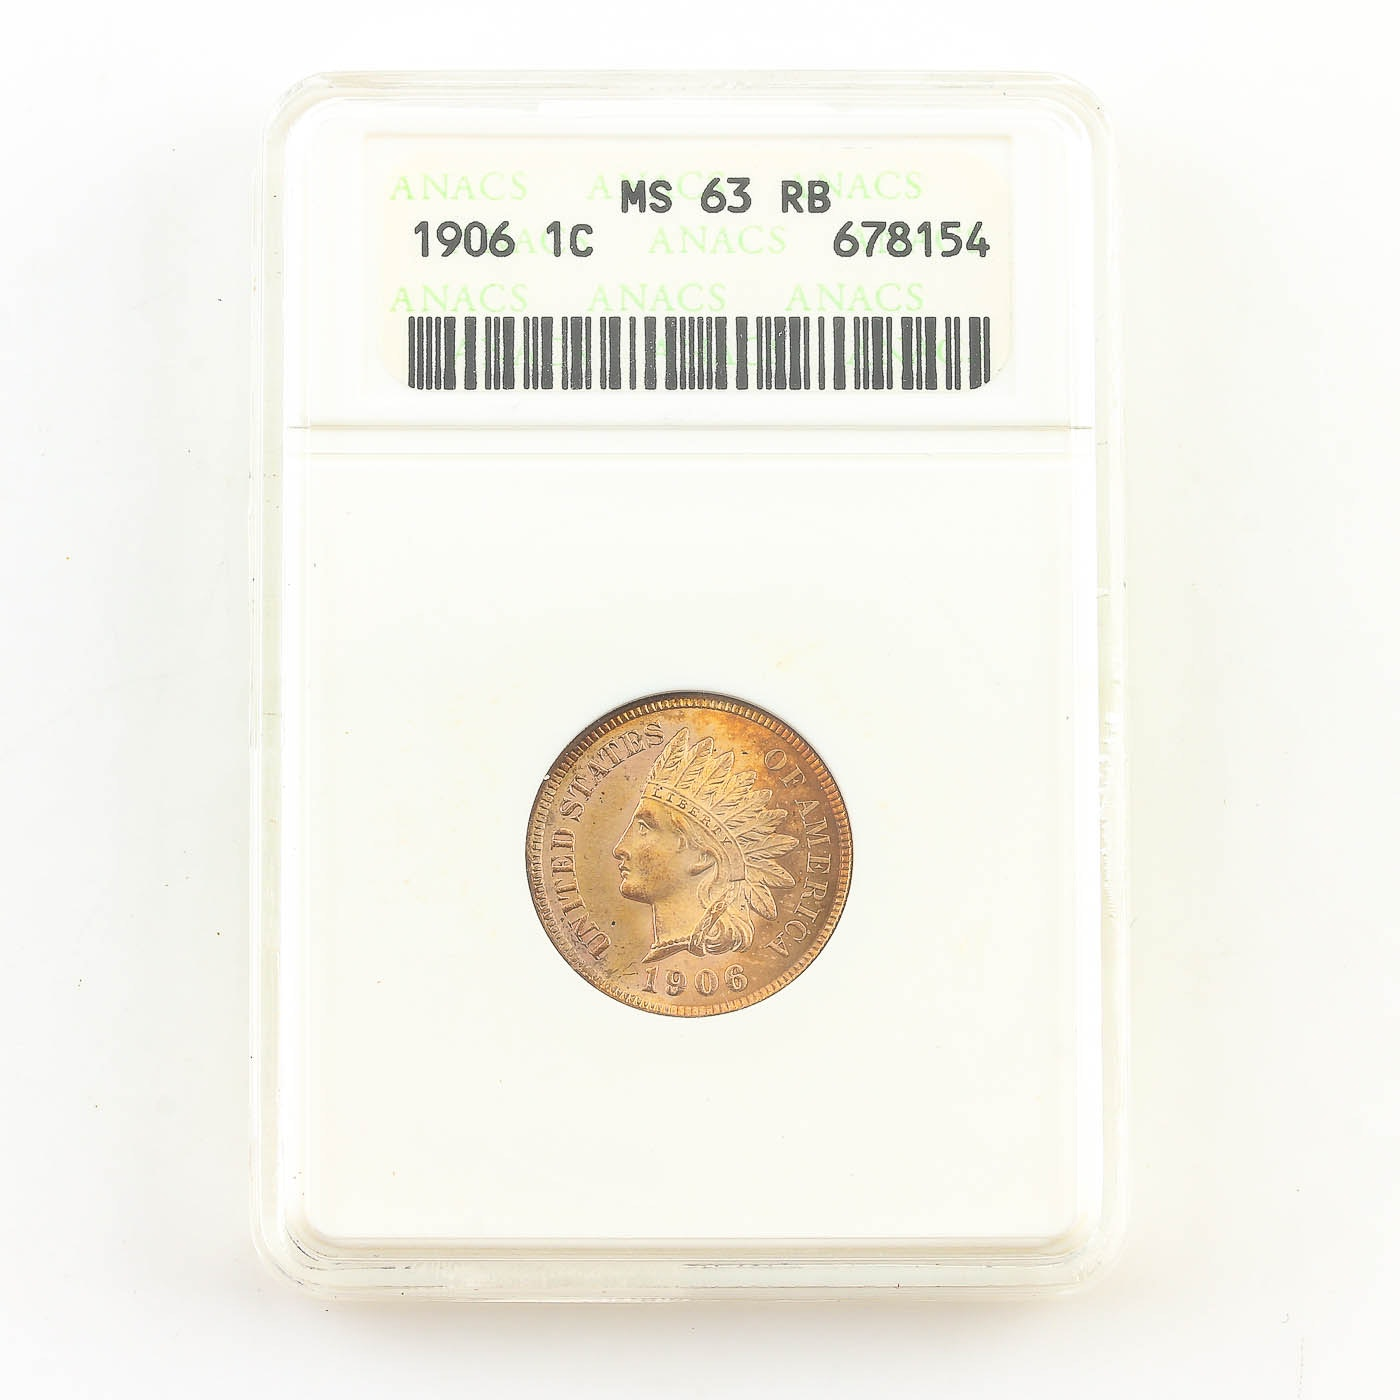 ANACS Graded MS63 RB 1906 Indian Head Cent